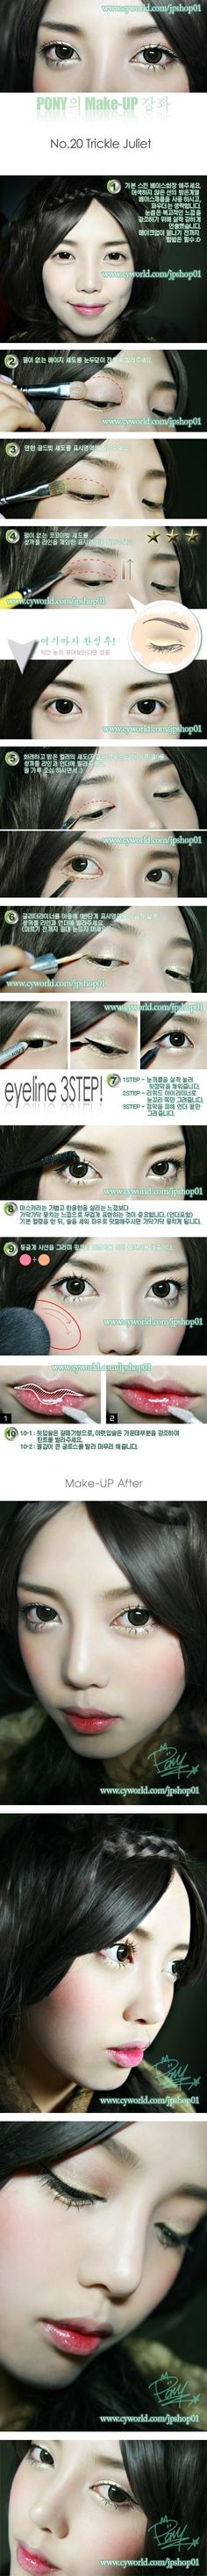 http://www.cyworld.com/jpshop01 : website of ulzzang makeup. Here is Trickle Juliet makeup tutorial